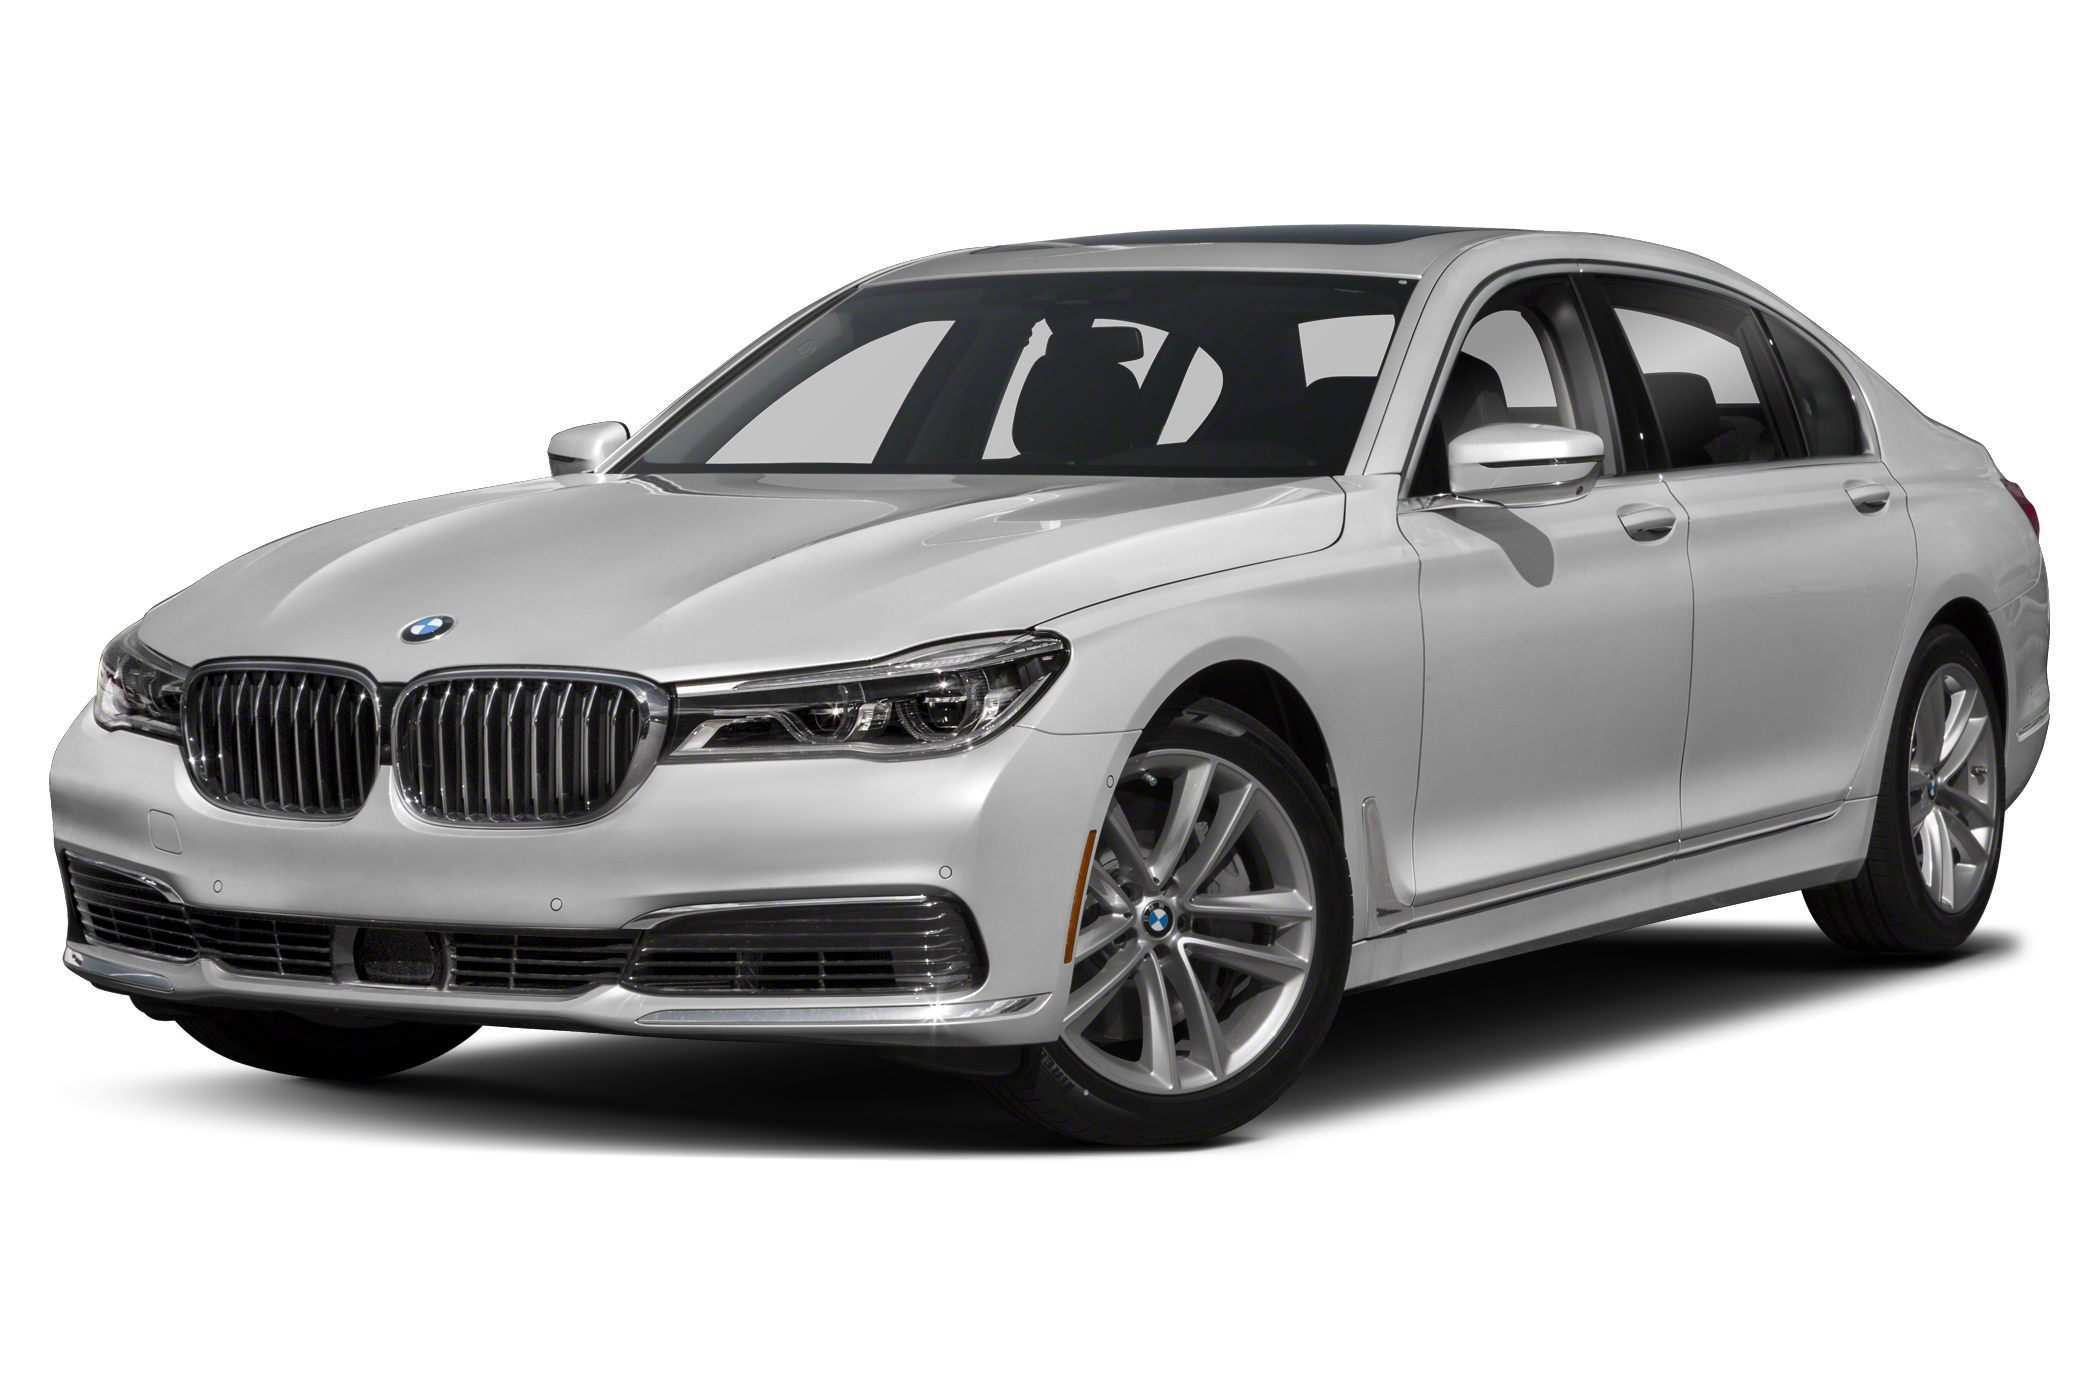 90 The Best 2019 Bmw 5500 Hd Style